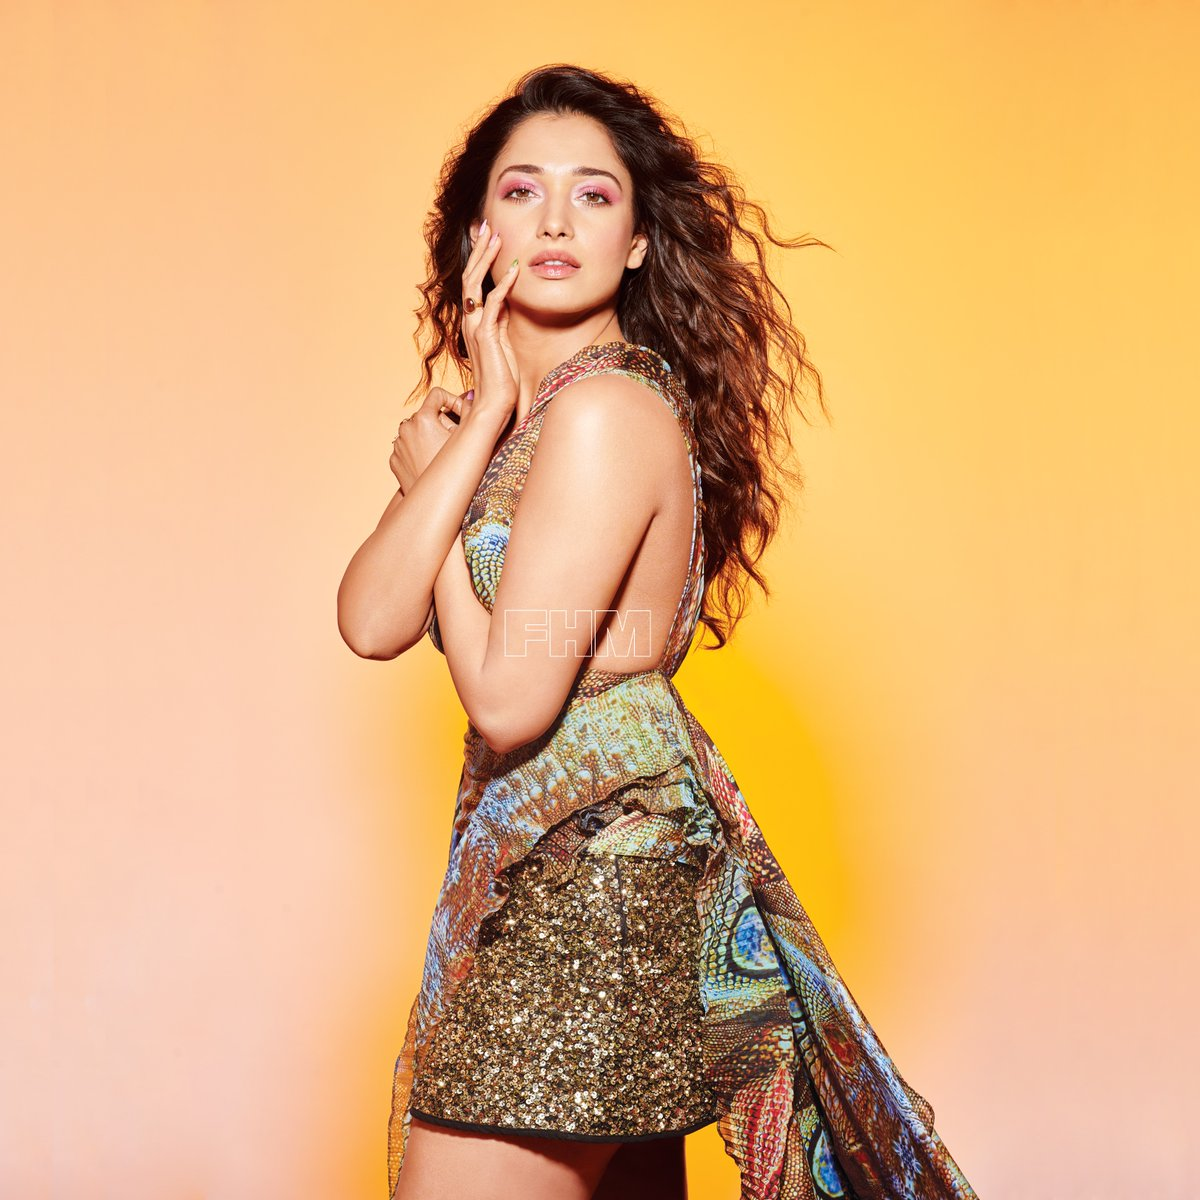 Actress Tamanna Photoshoot for FHM Magazine July 2019 Issue